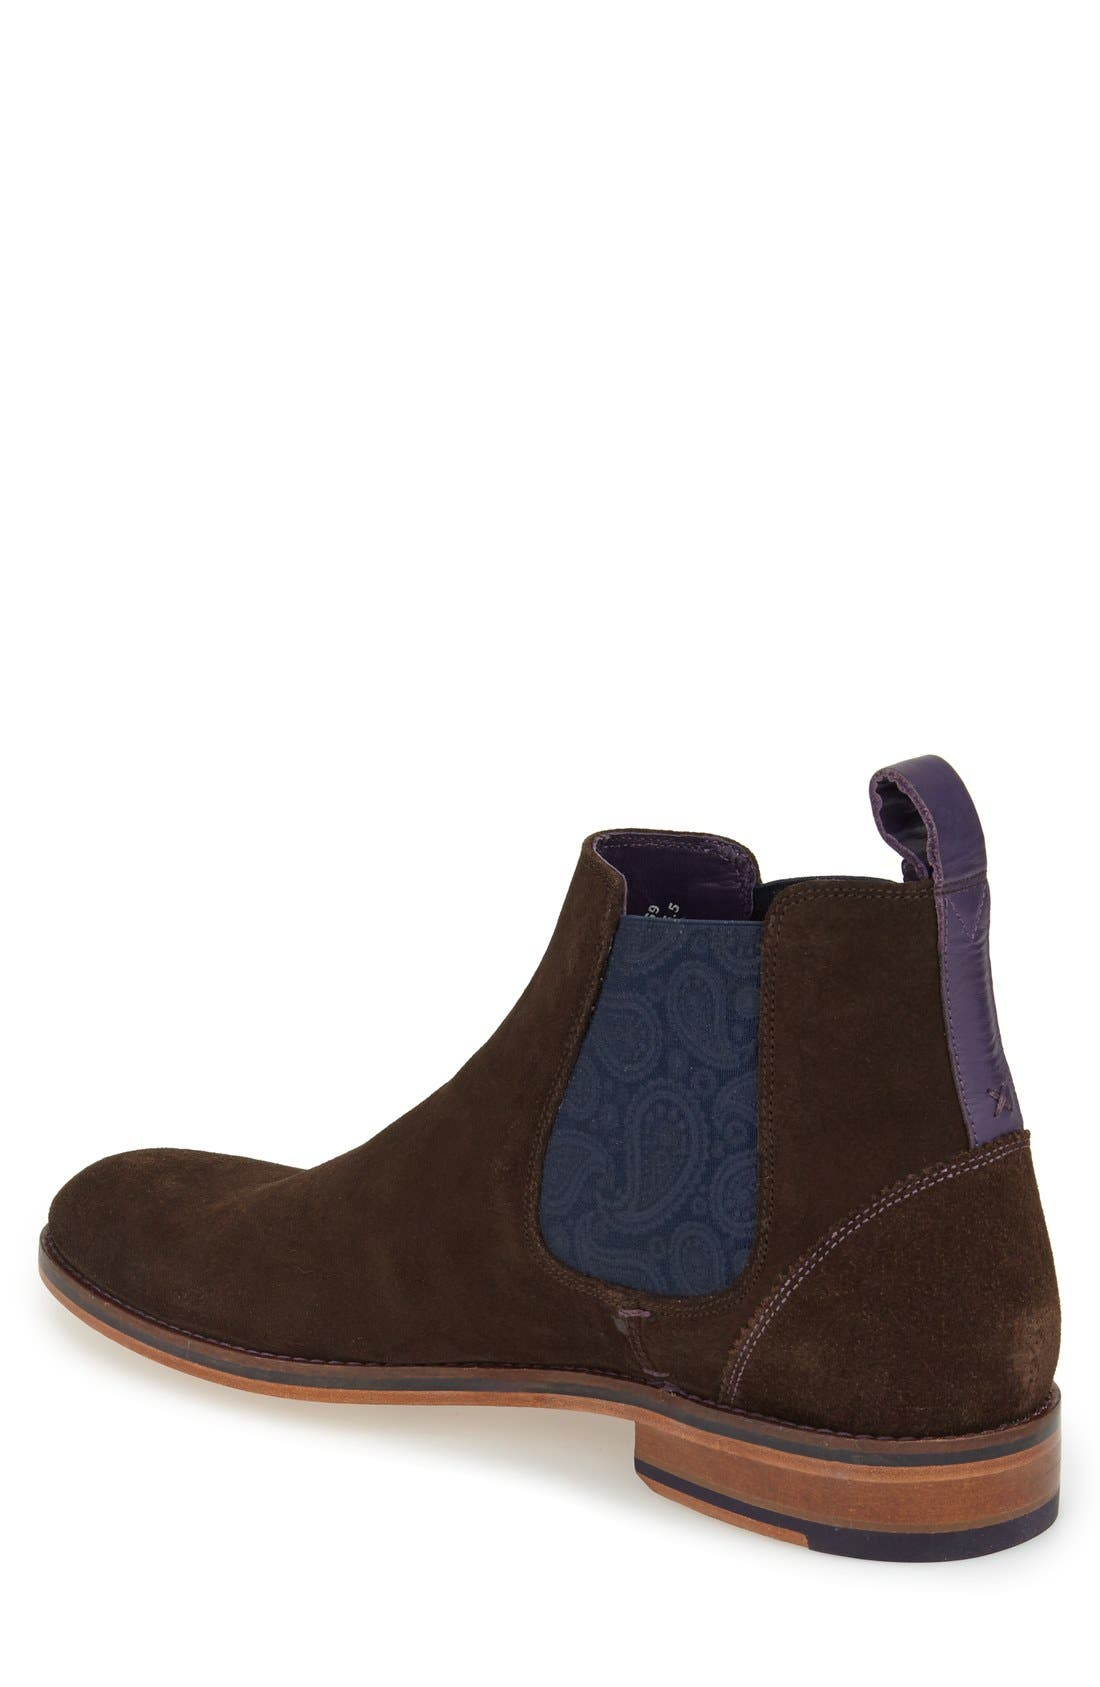 'Camroon 4' Chelsea Boot,                             Alternate thumbnail 10, color,